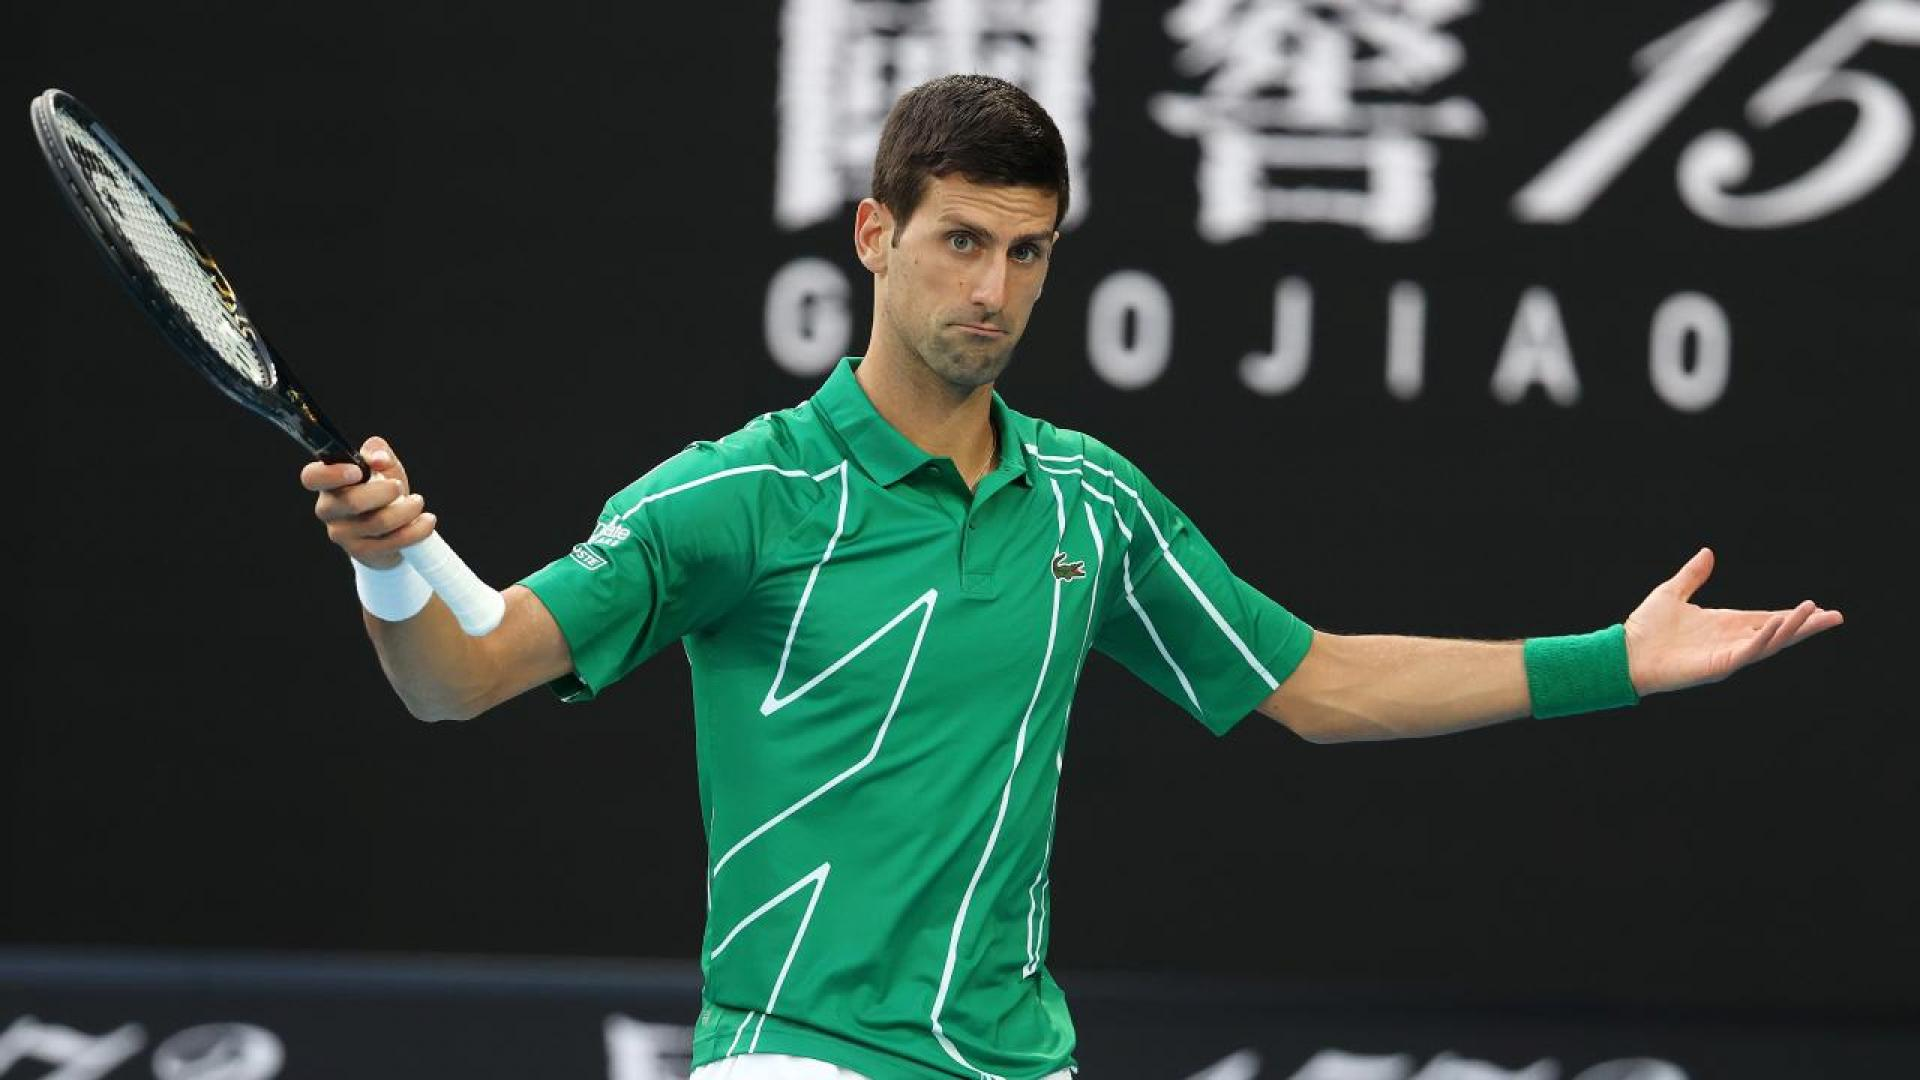 Novak Djokovic describes criticism after Adria Tour as witch-hunt